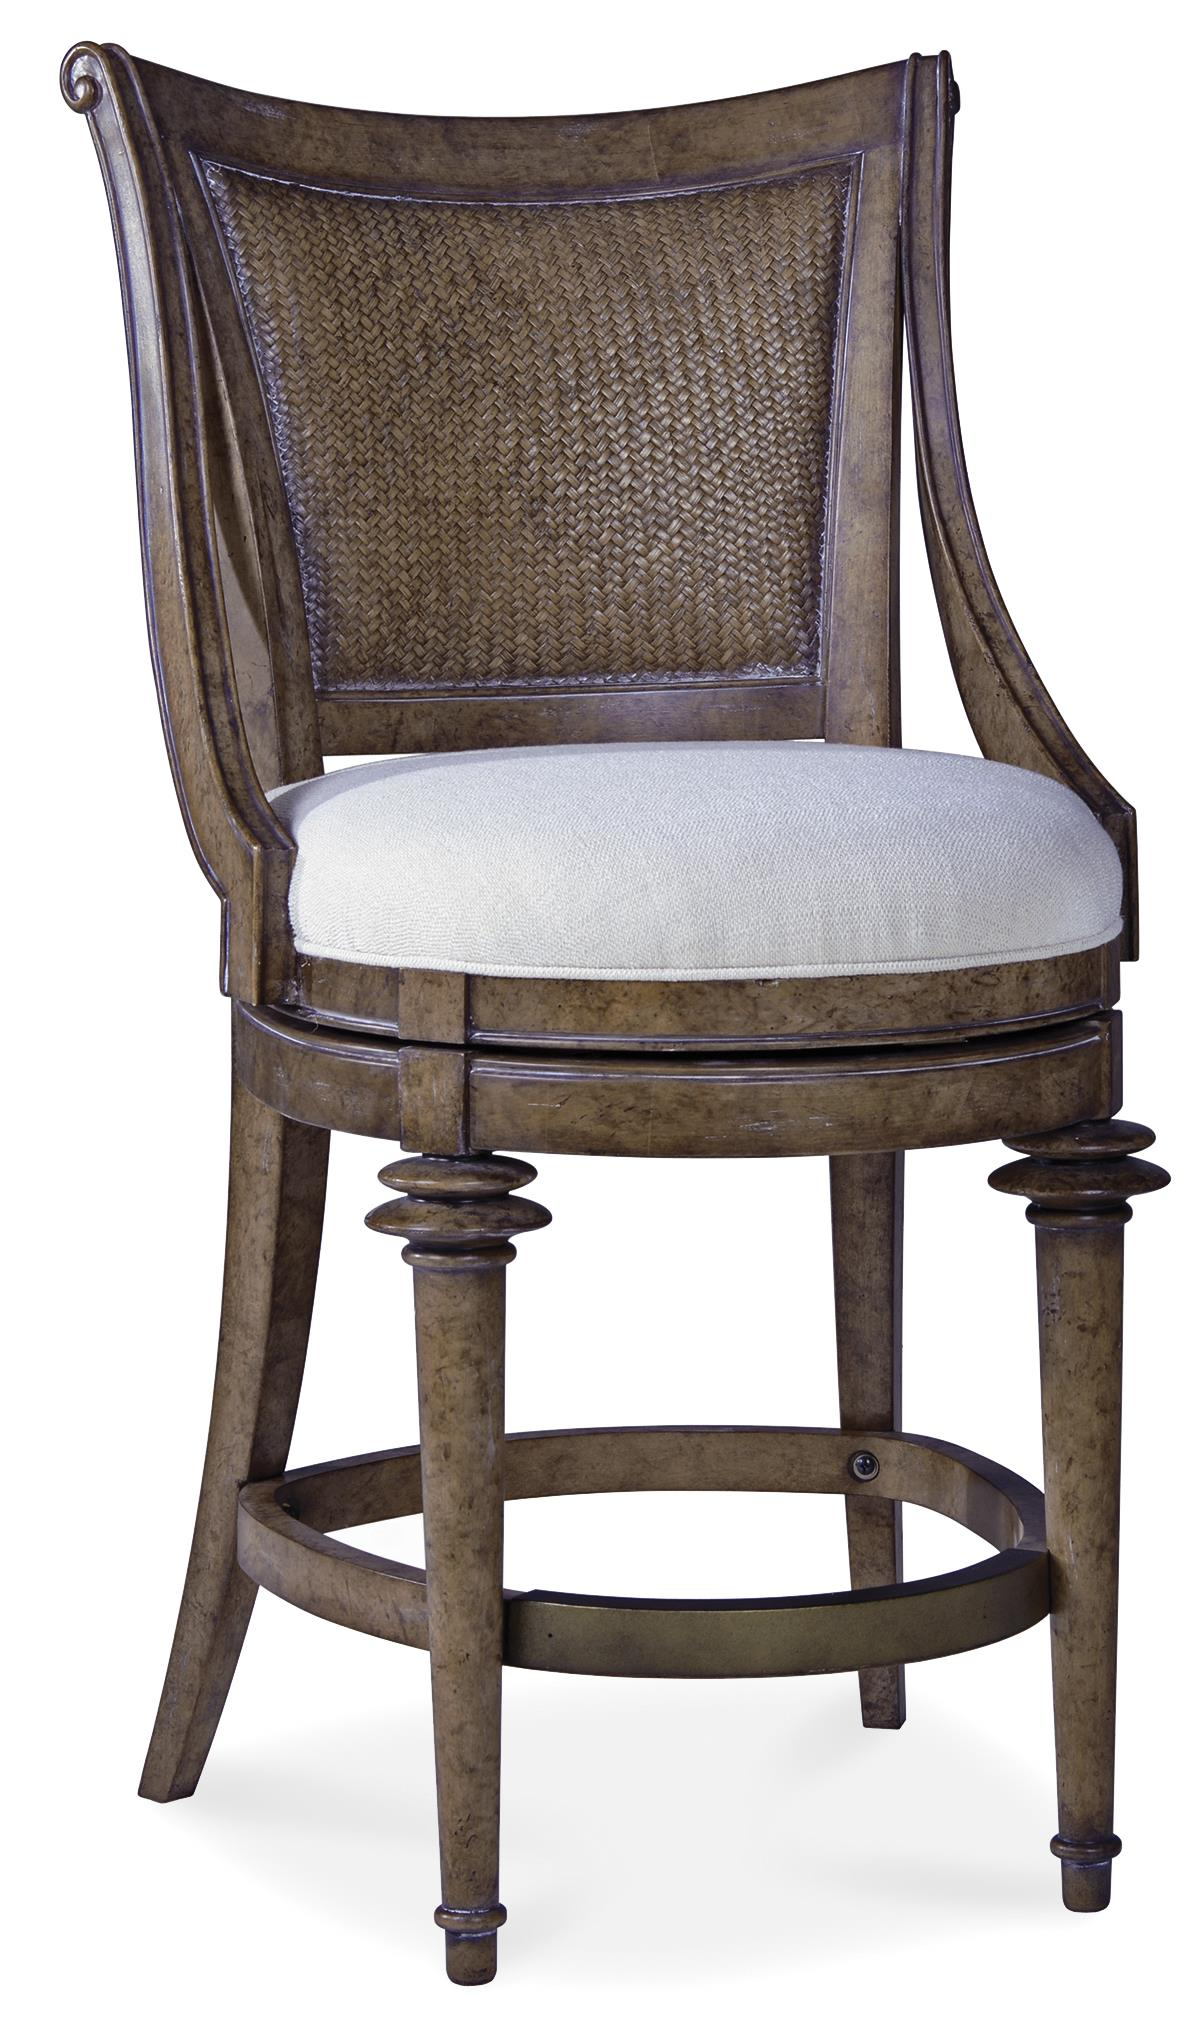 A.R.T. Furniture Inc Pavilion Woven-Back High Dining Chair - Item Number: 229209-2608